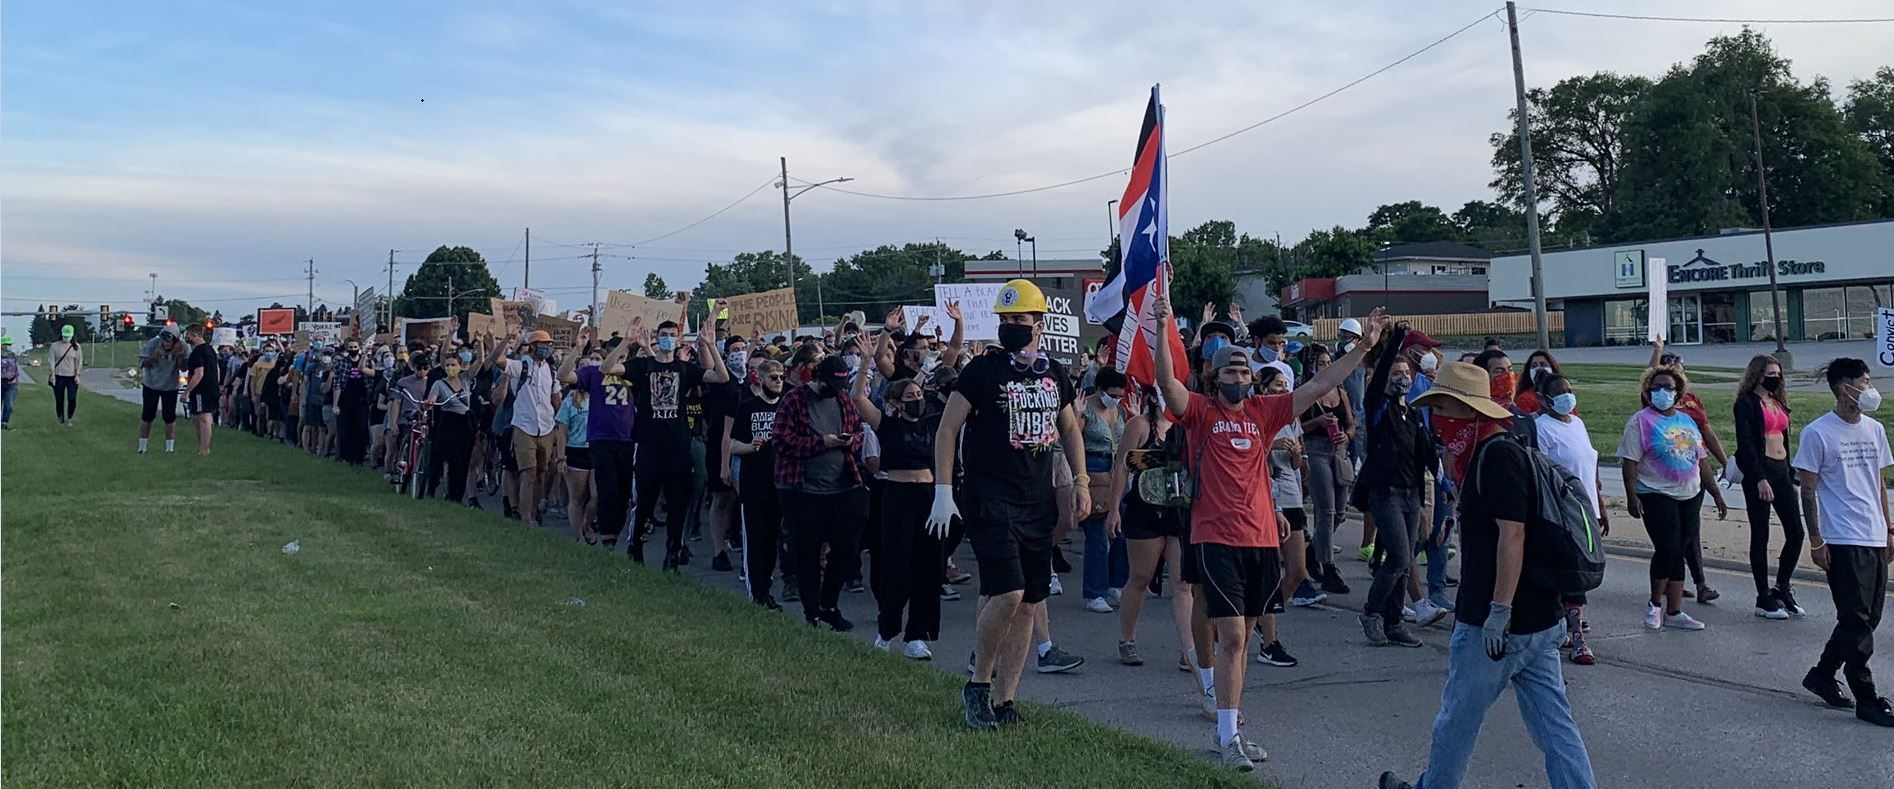 BLM March on Merle Hay Road Ends Peacefully After Being Met With Riot Gear 7